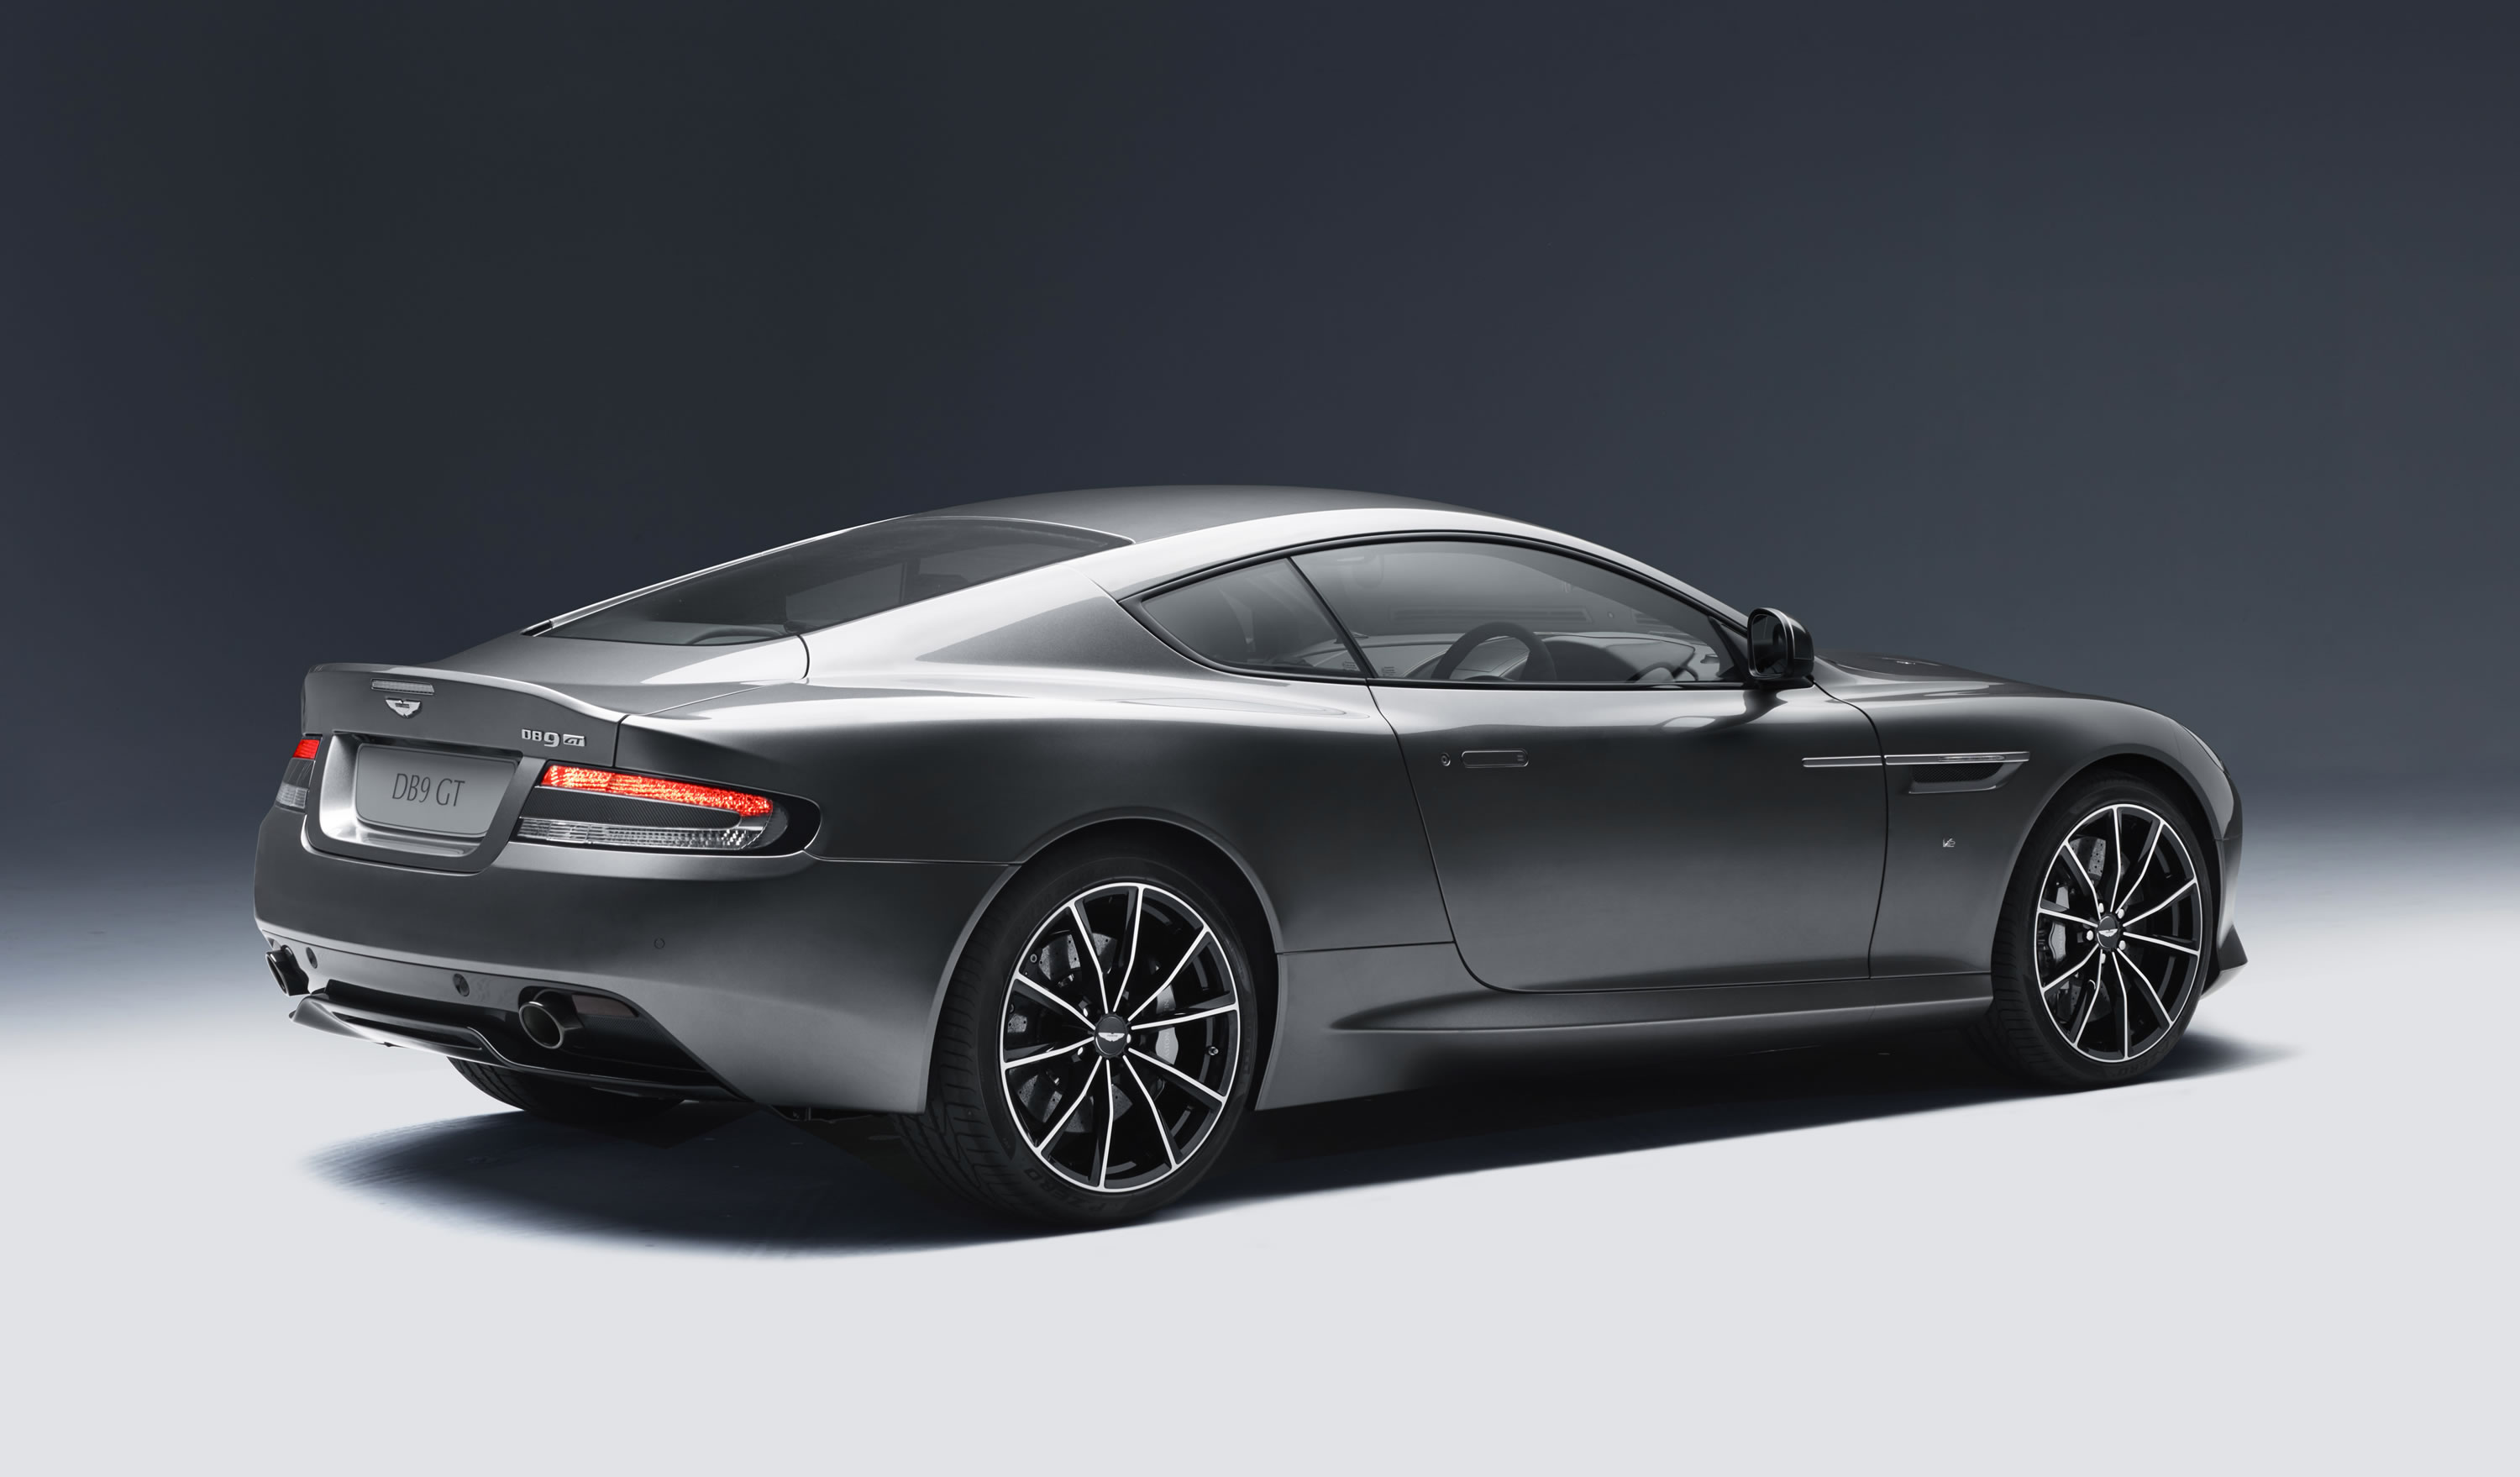 2016 aston martin db9 gt photos specs and review rs. Black Bedroom Furniture Sets. Home Design Ideas